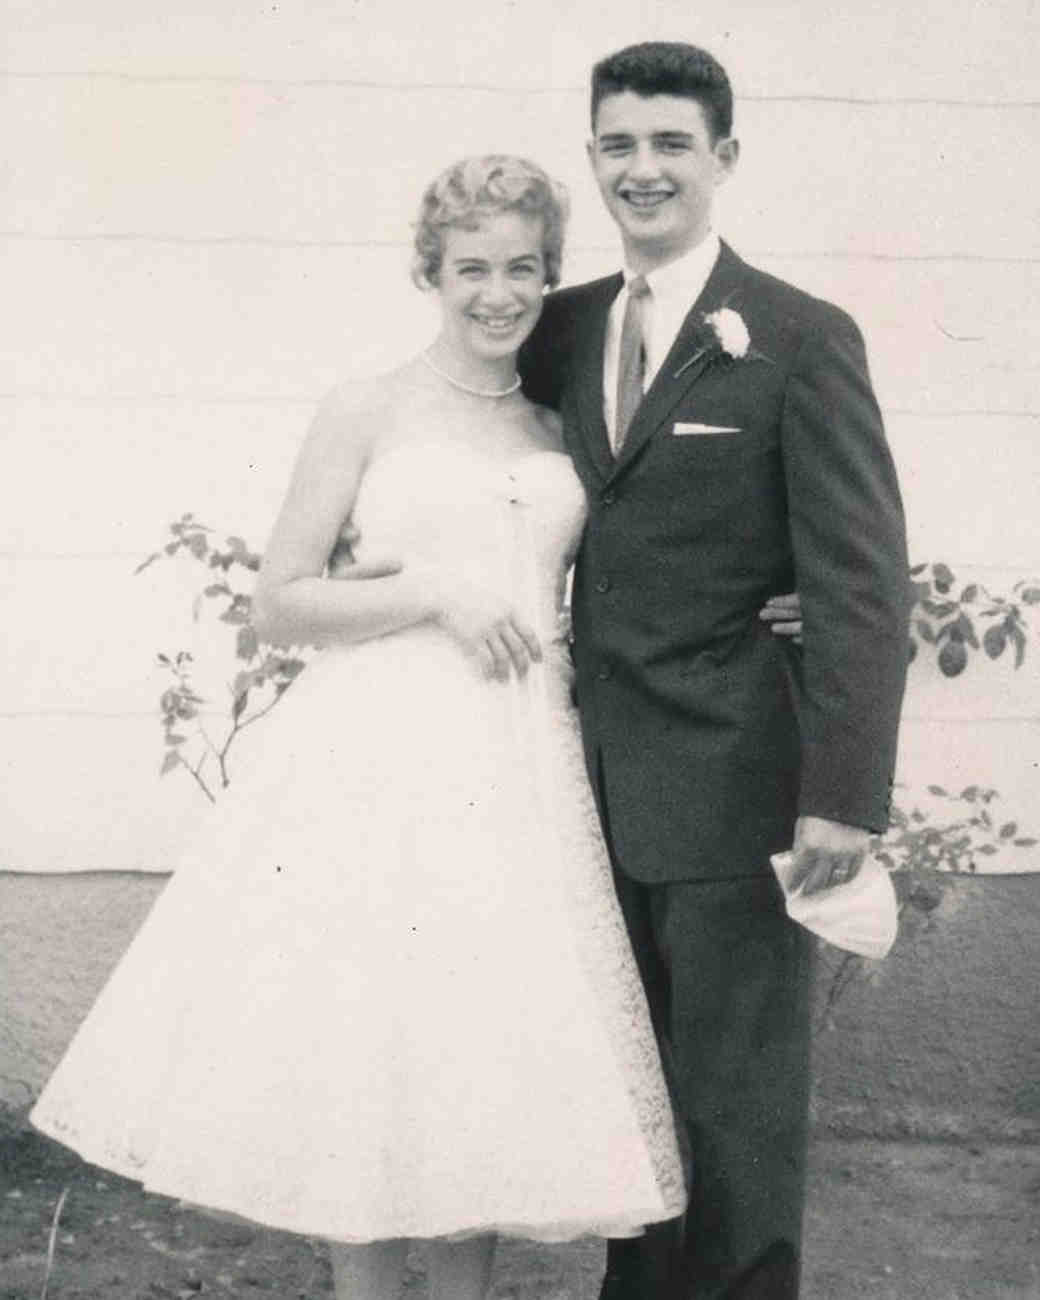 Carole King and Gerry Goffin Wedding Photo